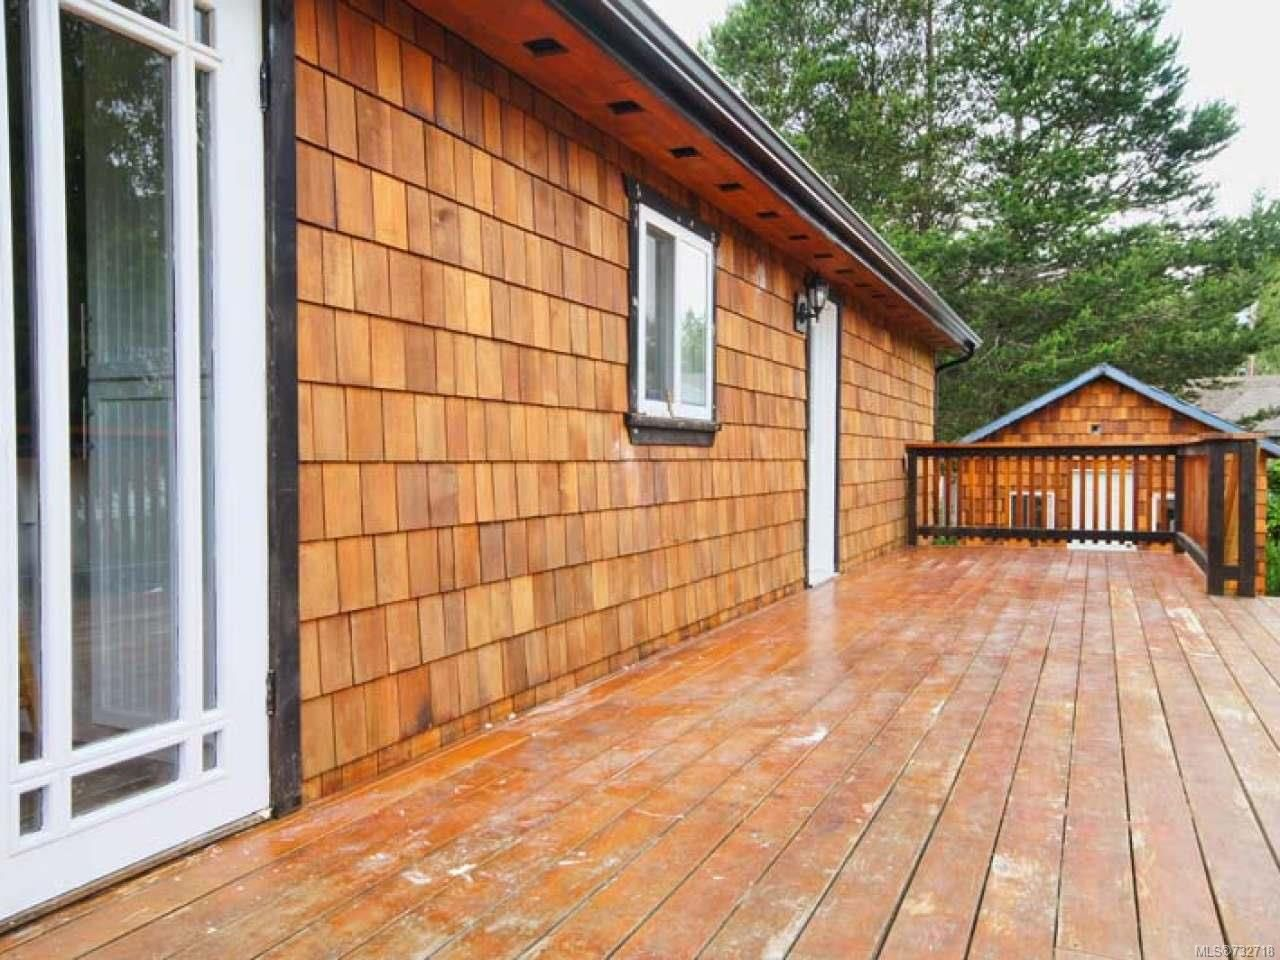 Photo 26: Photos: 921 POPLAR Way in ERRINGTON: PQ Errington/Coombs/Hilliers Manufactured Home for sale (Parksville/Qualicum)  : MLS®# 732718